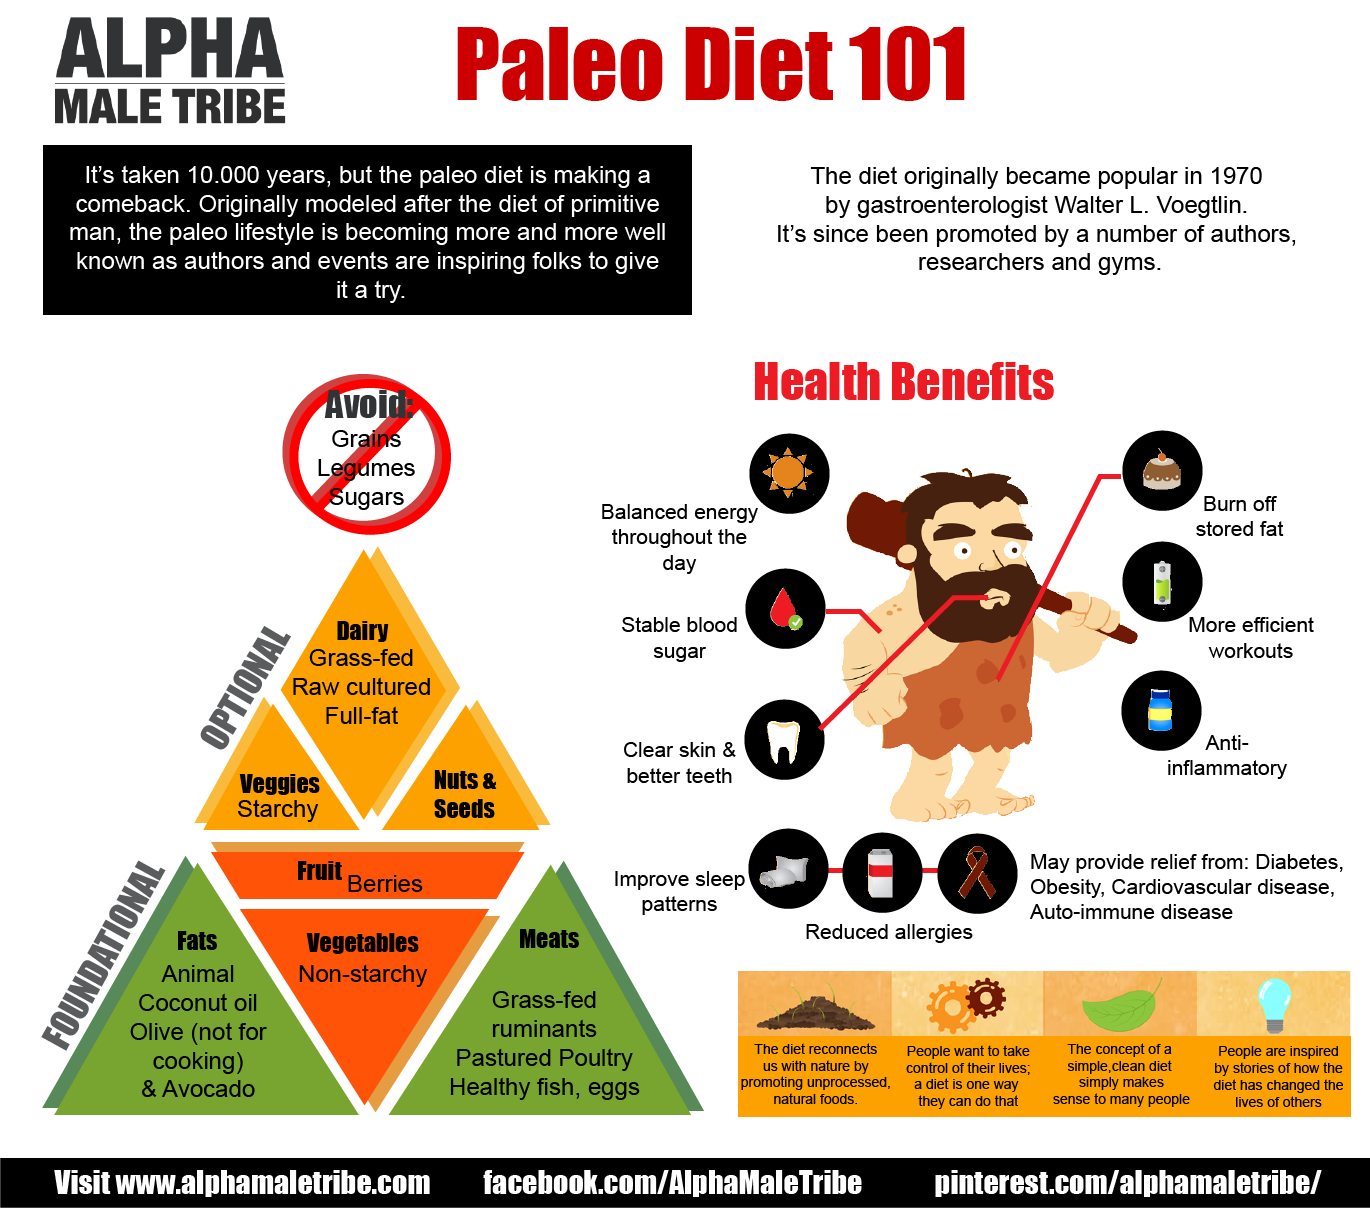 paleo vs the zone diet I am a certified zone instructor, and have worked teaching zone diet principles to hundreds of clients over the last 10 years more recently after finding that eating paleo food choices was the icing on the cake health wise, i have become a paleo enthusiast and teacher.